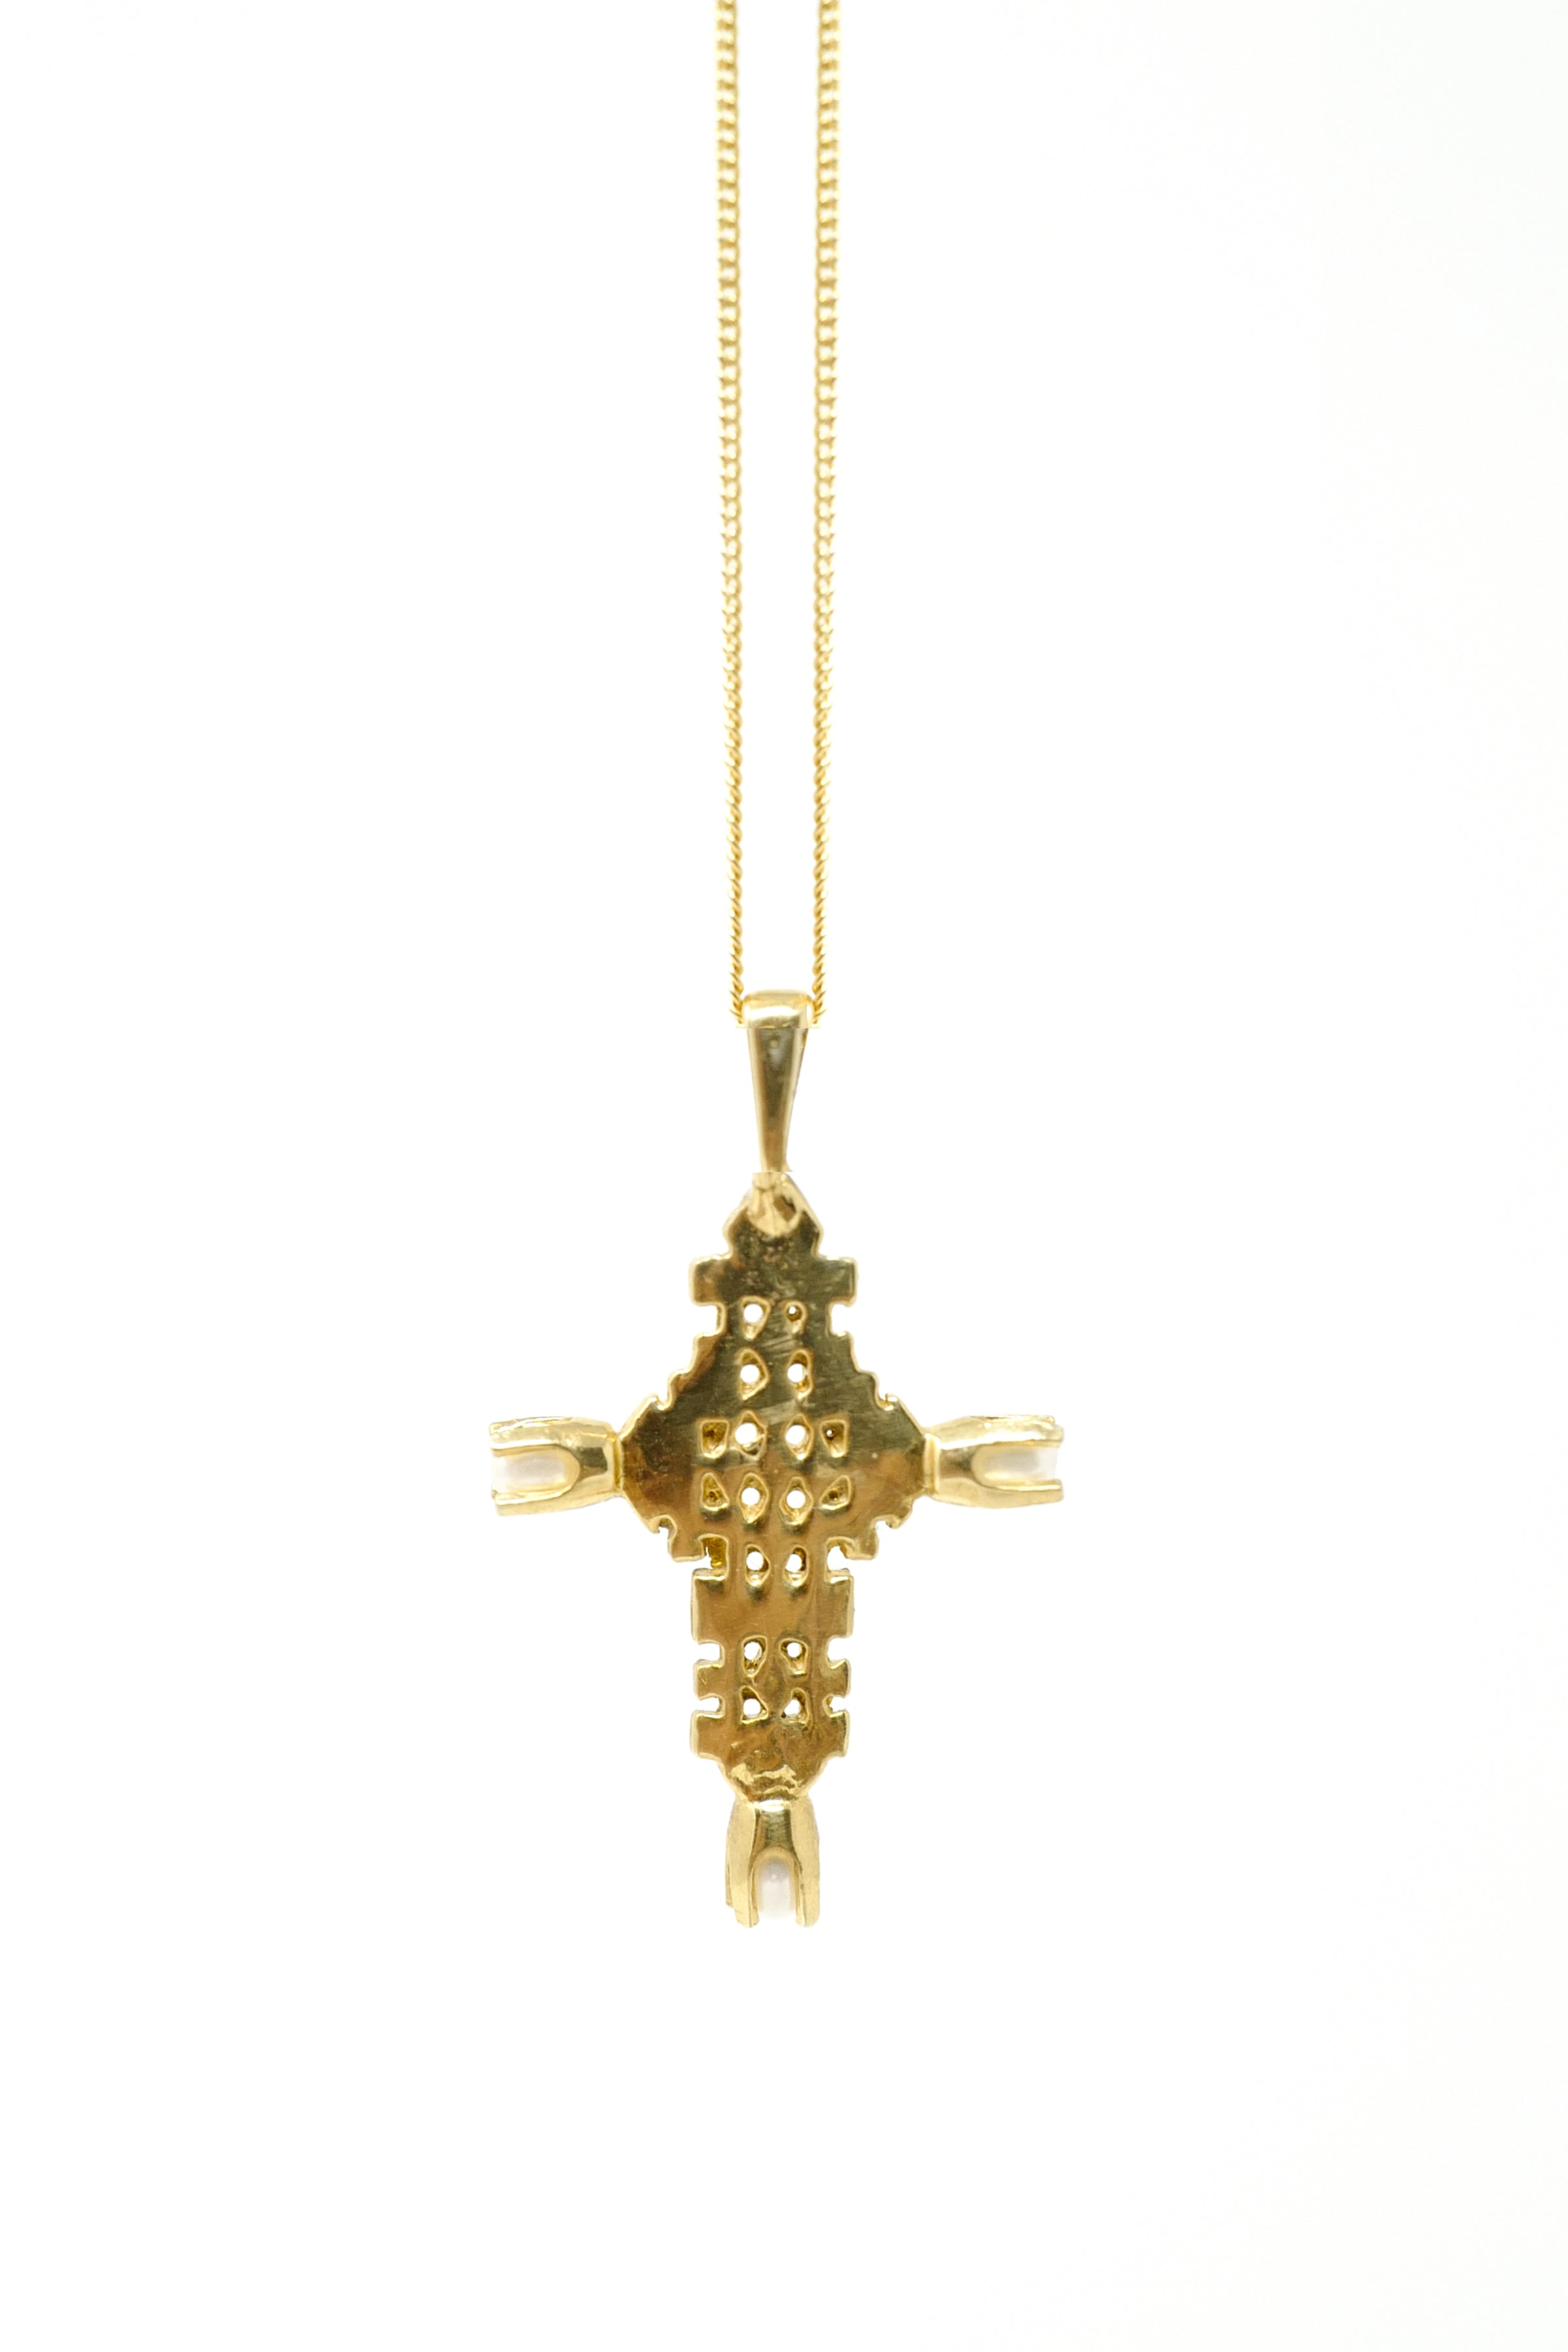 THE ETHIOPIAN Coptic Cross Necklace with Pearls